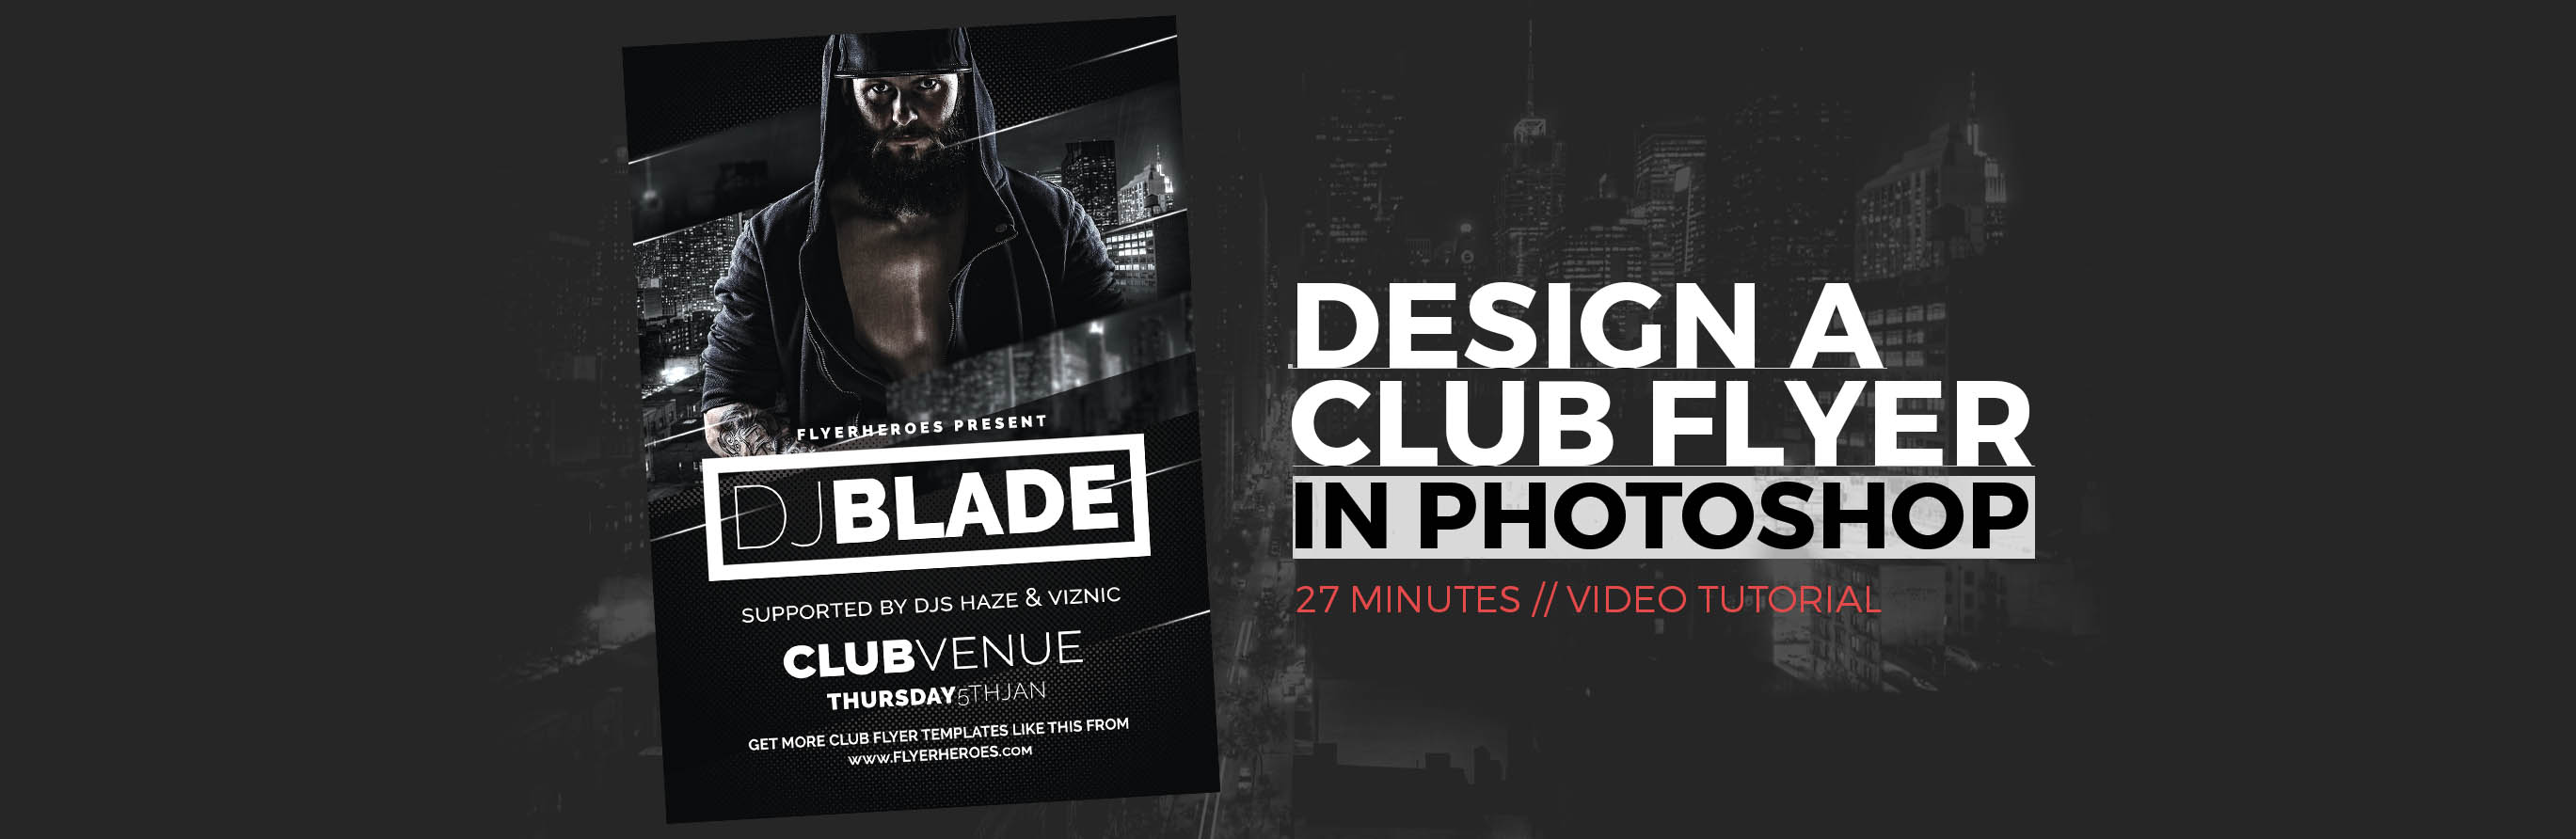 Design a Club Flyer in Photoshop - Flyer Design Tutorial